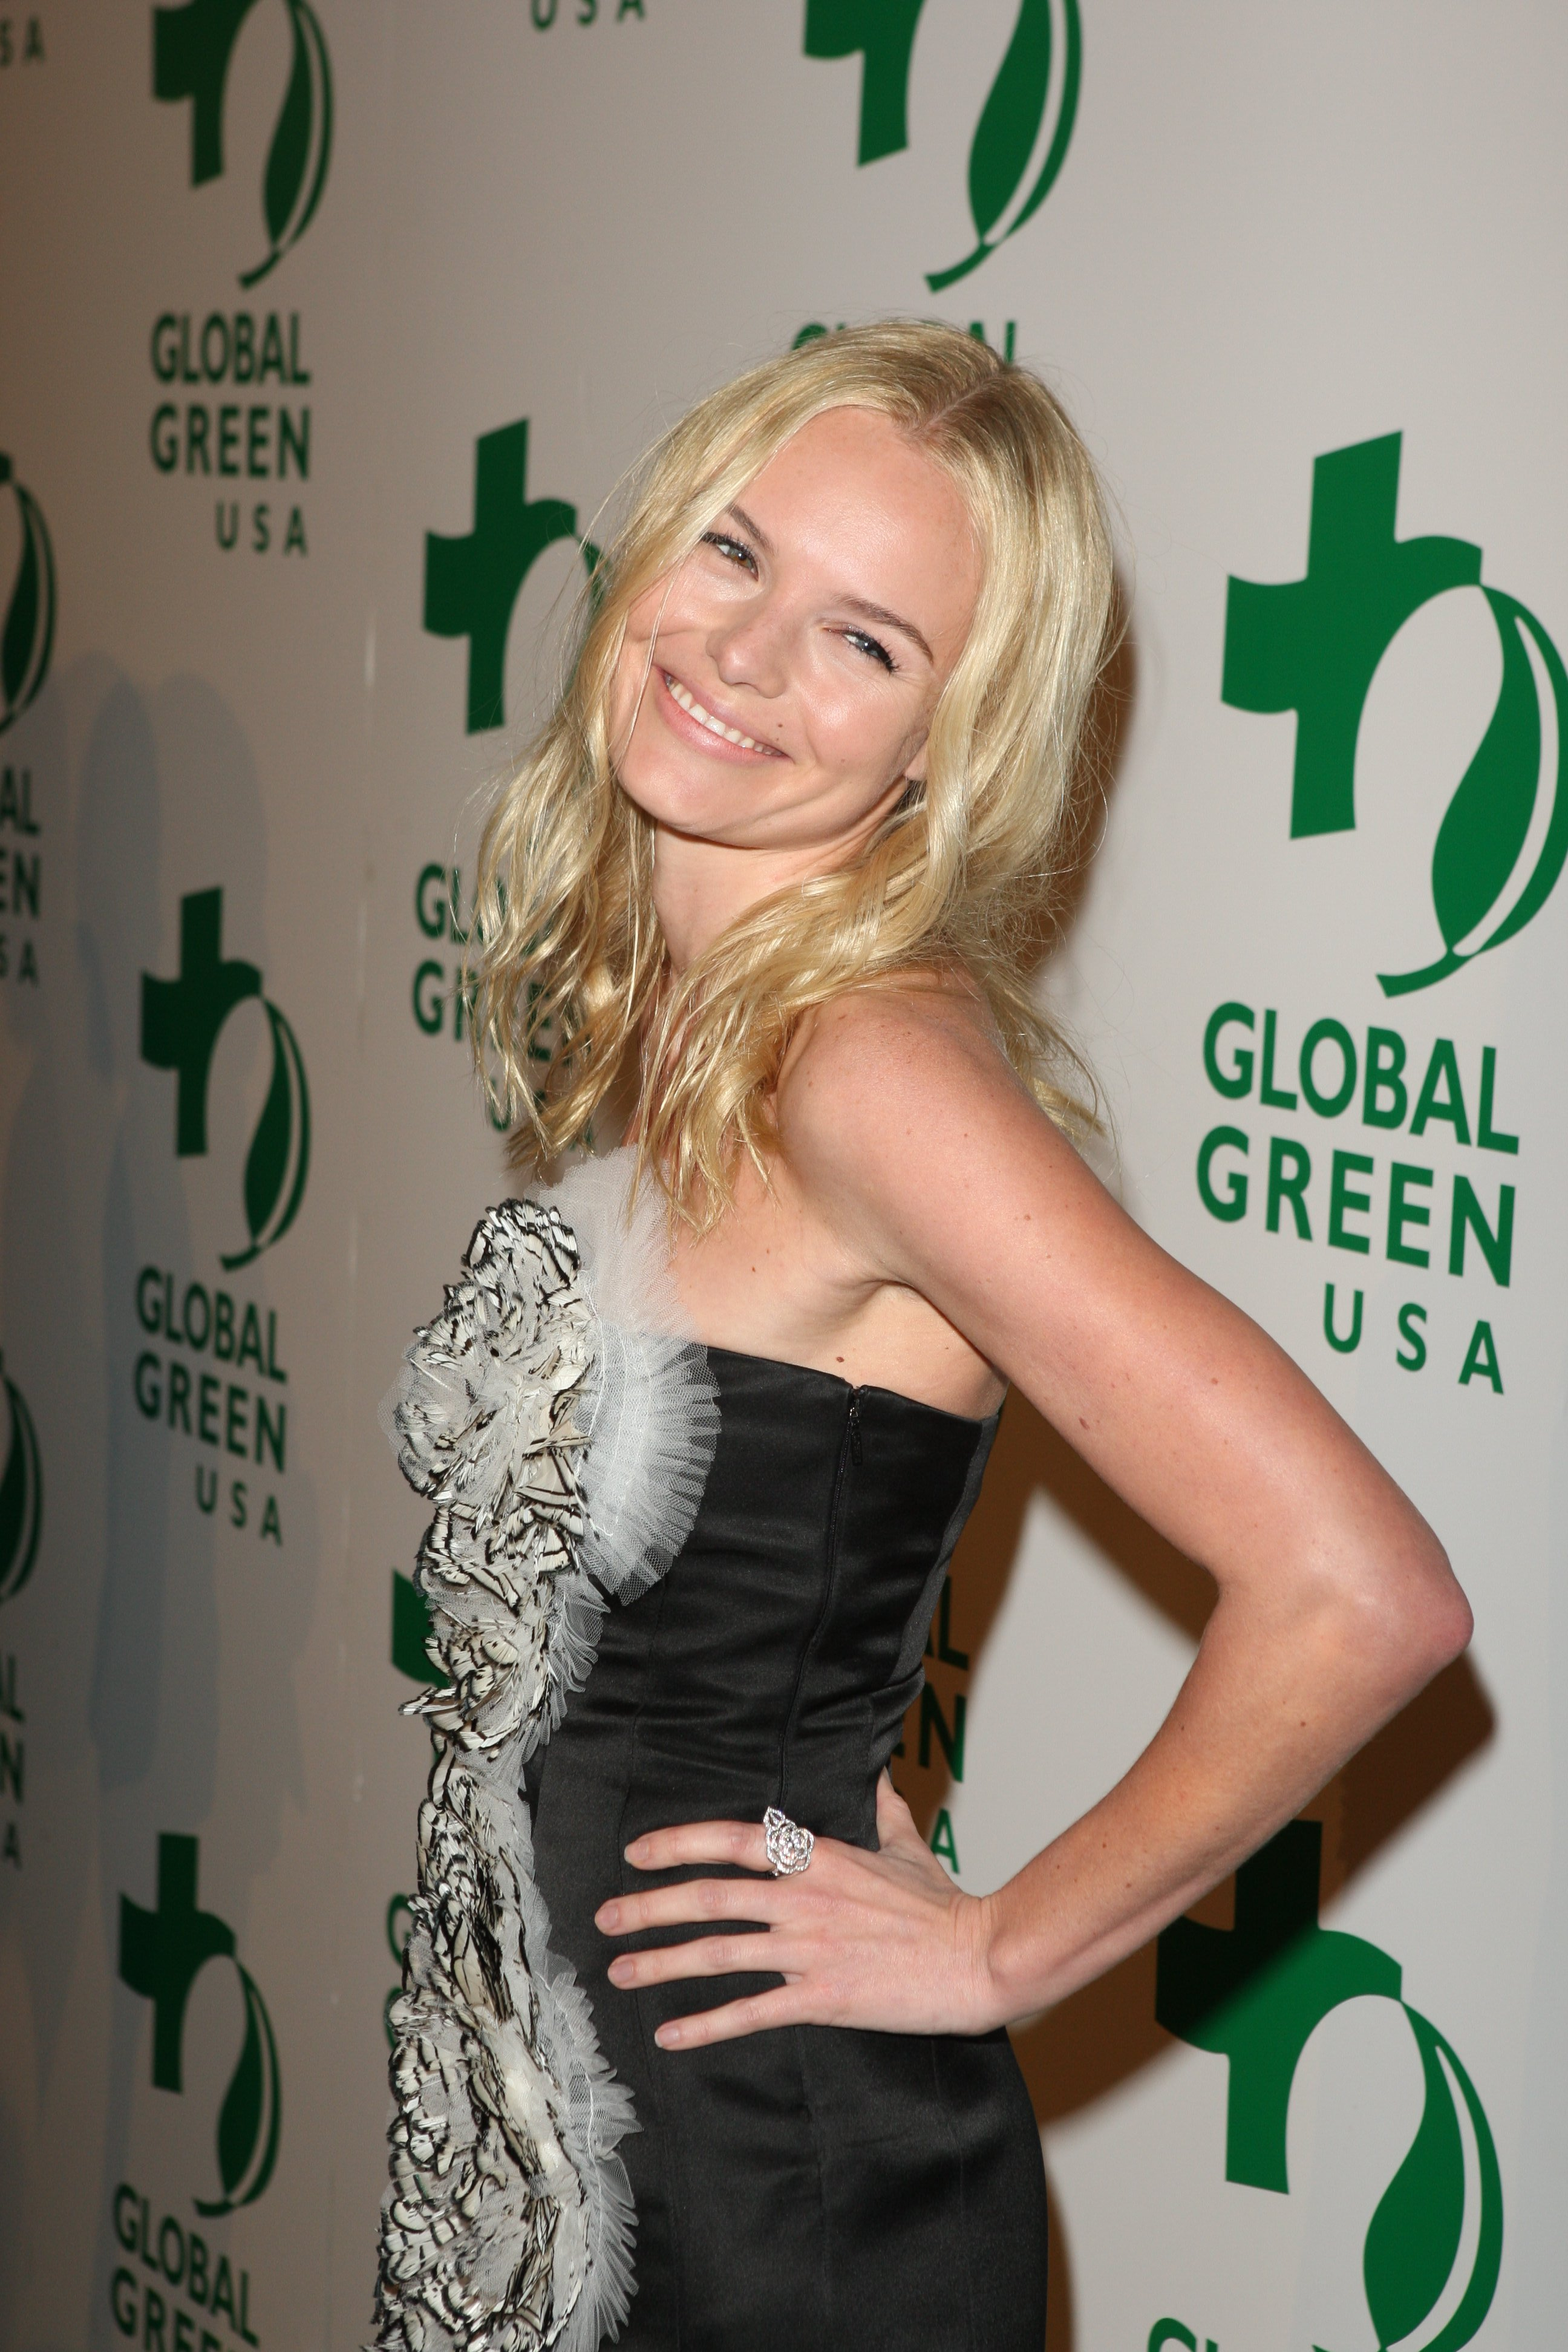 17031_Celebutopia-Kate_Bosworth_arrives_at_Global_Green_USA3s_6th_Annual_Pre-Oscar_Party-04_122_492lo.jpg